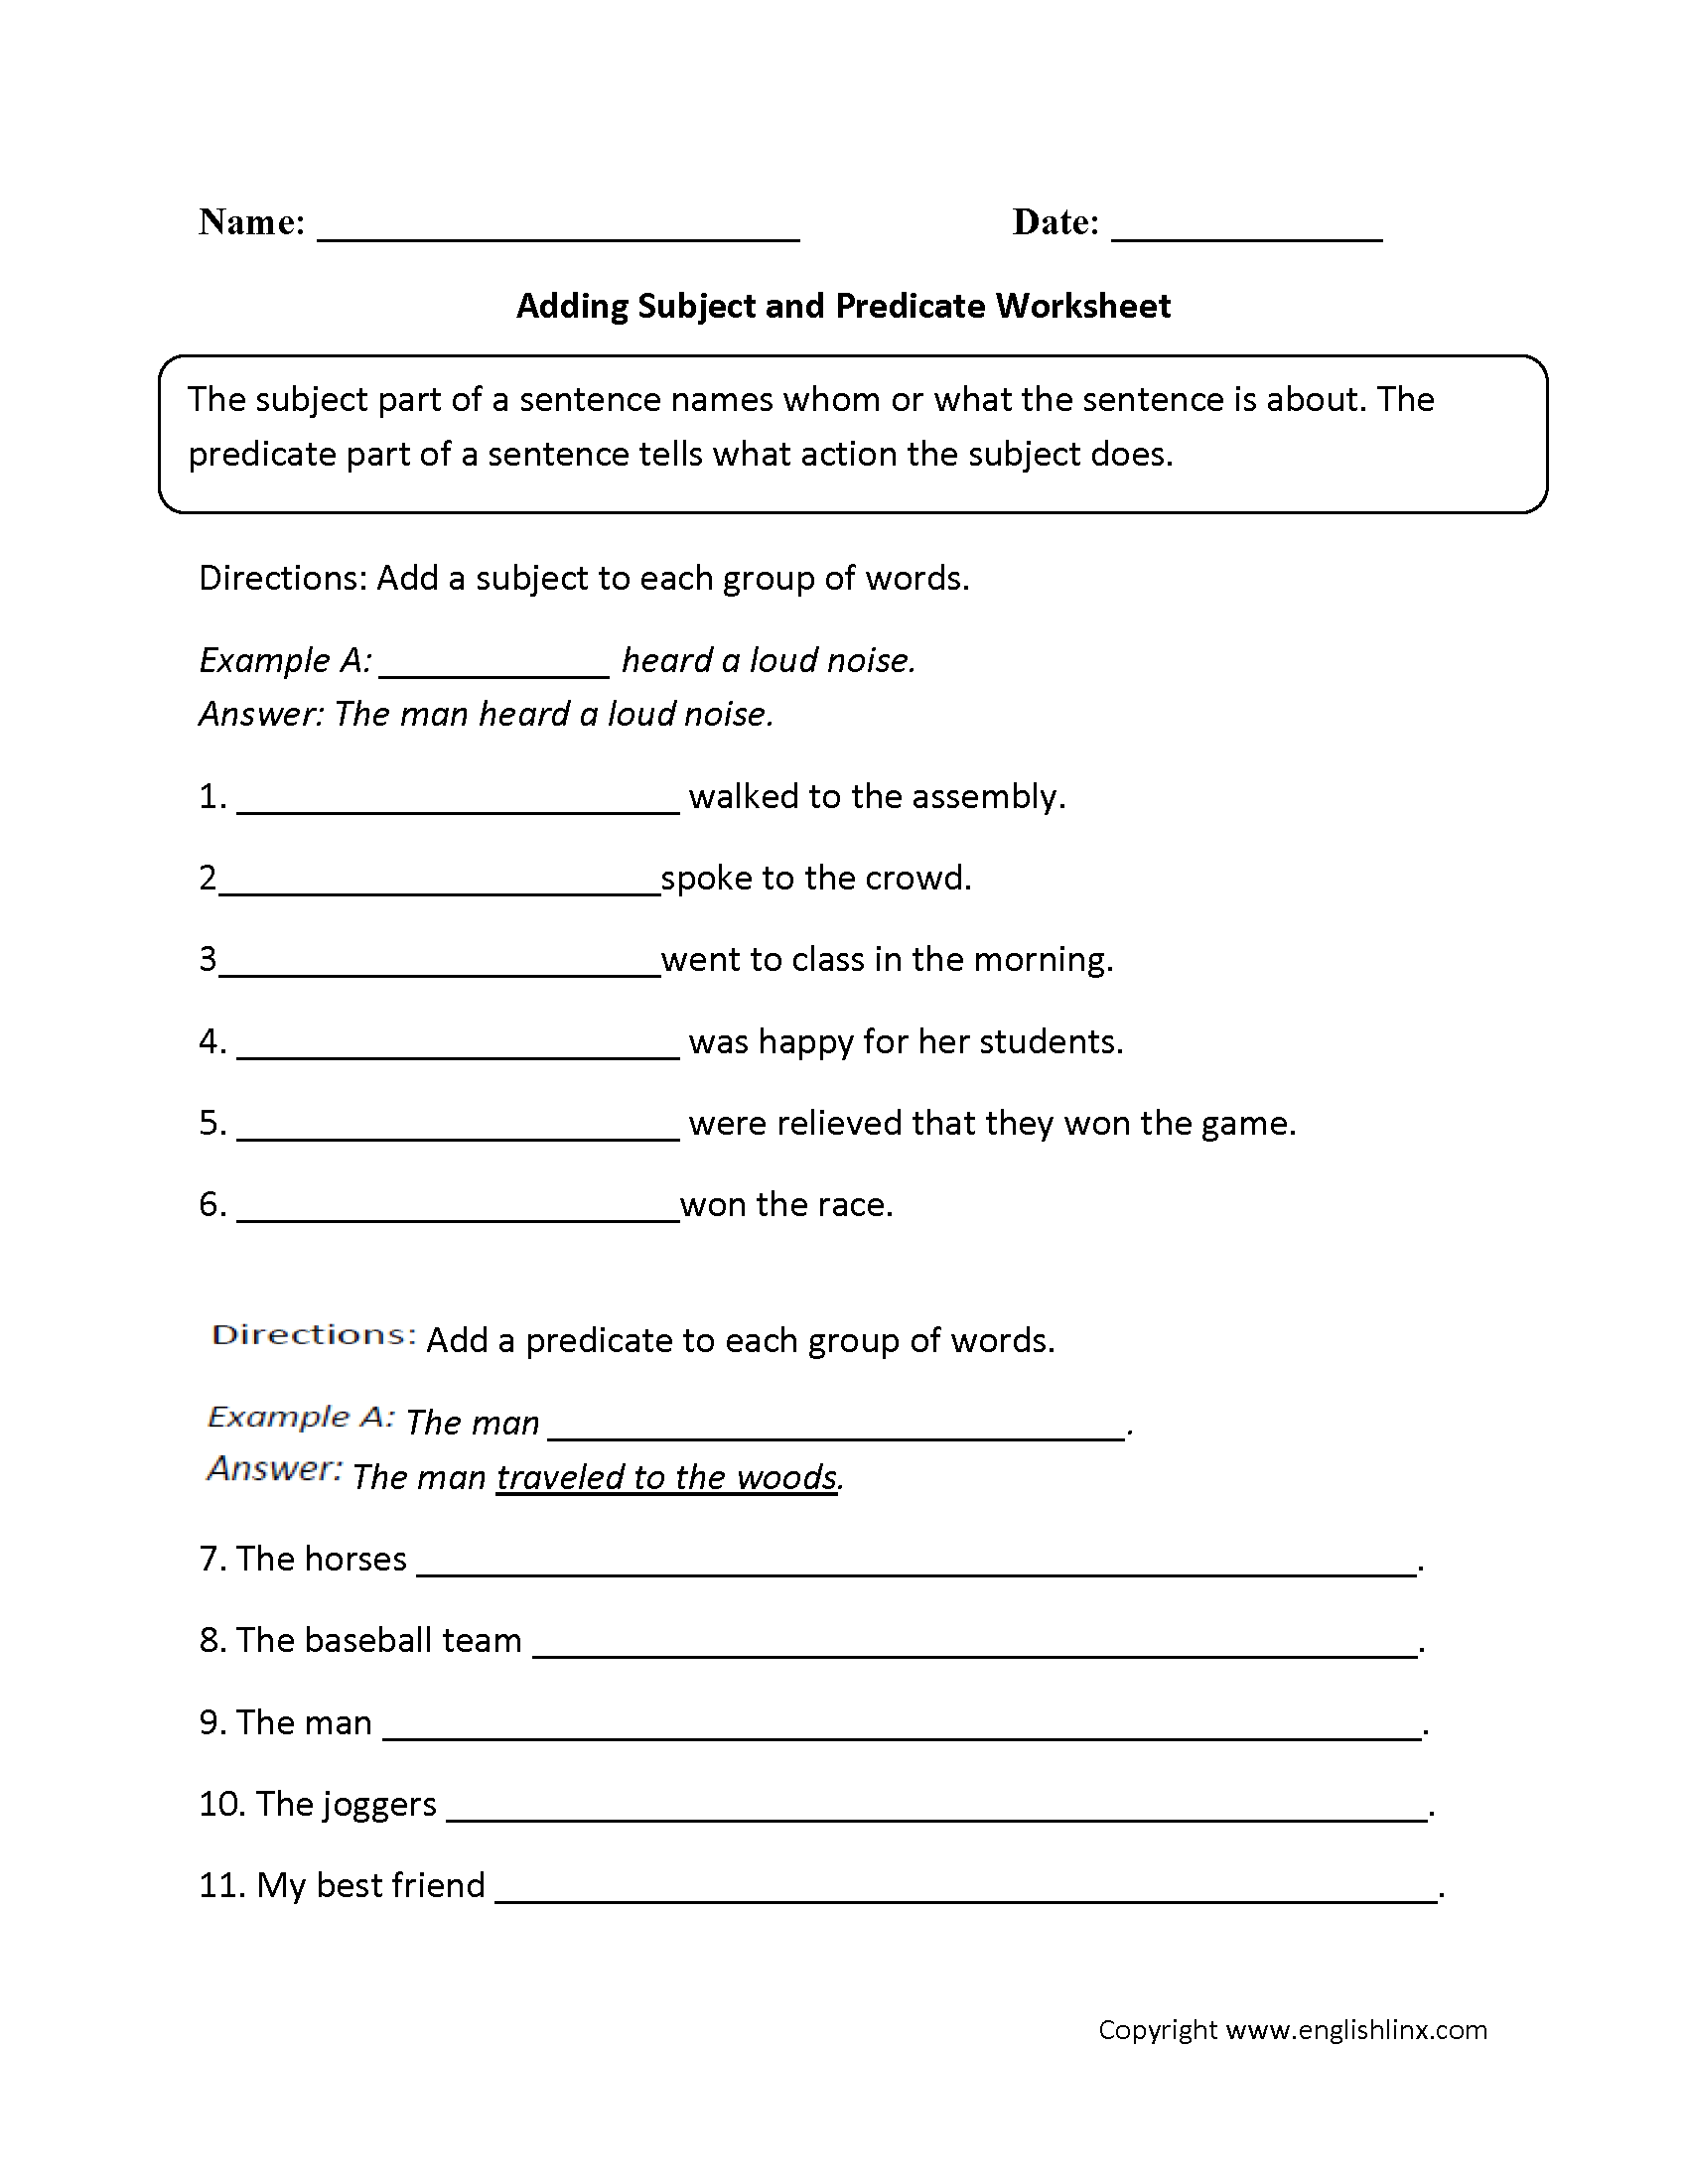 Worksheets Grammar Worksheets For 6th Grade parts of a sentence worksheets subject and predicate adding predicateworksheet